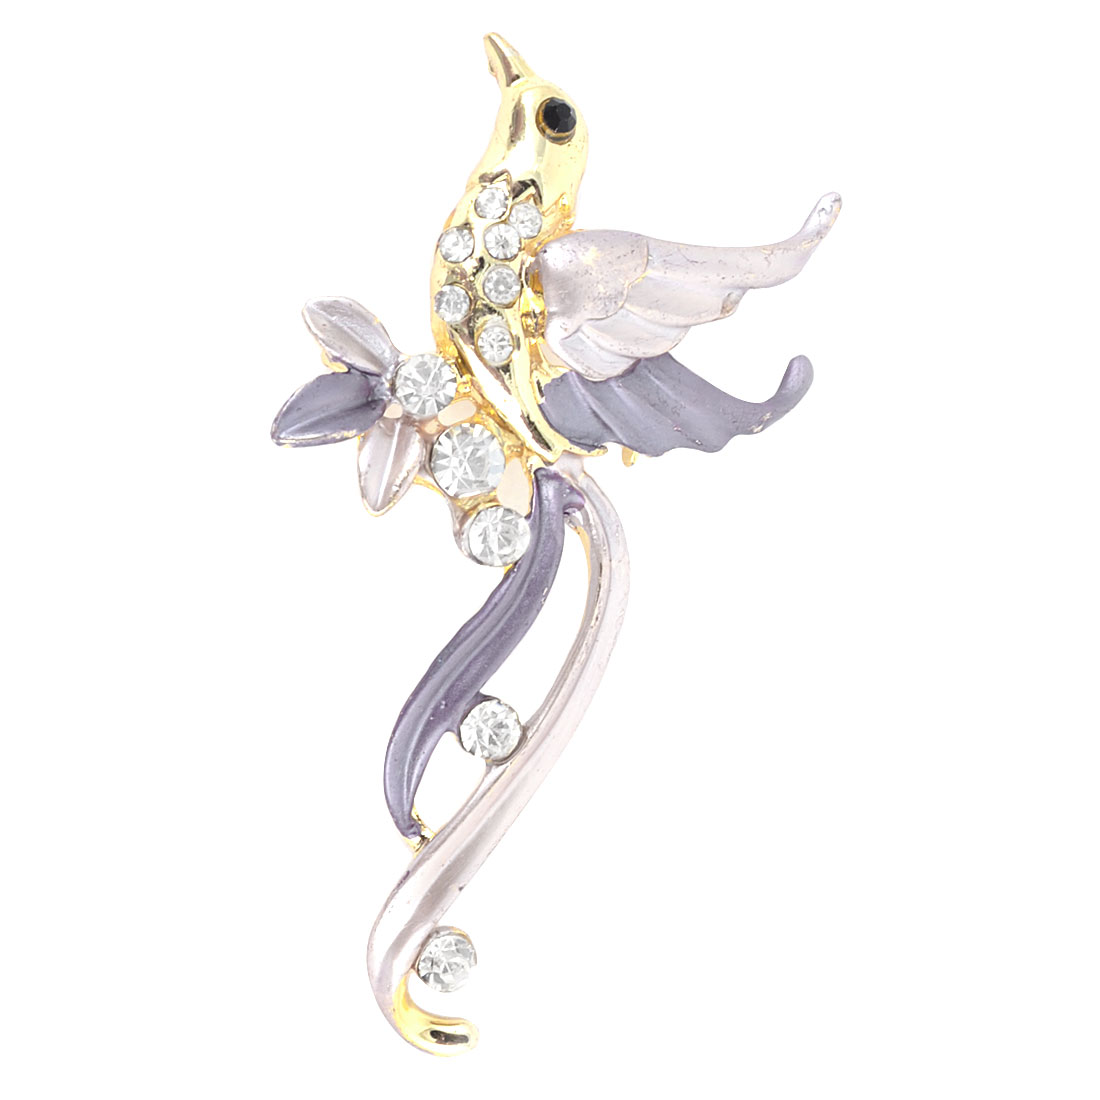 Women Plastic Shiny Rhinestone Inlaid Pink Purple Wings Dress Clothing Safety Pin Brooch Breastpin Gold Tone